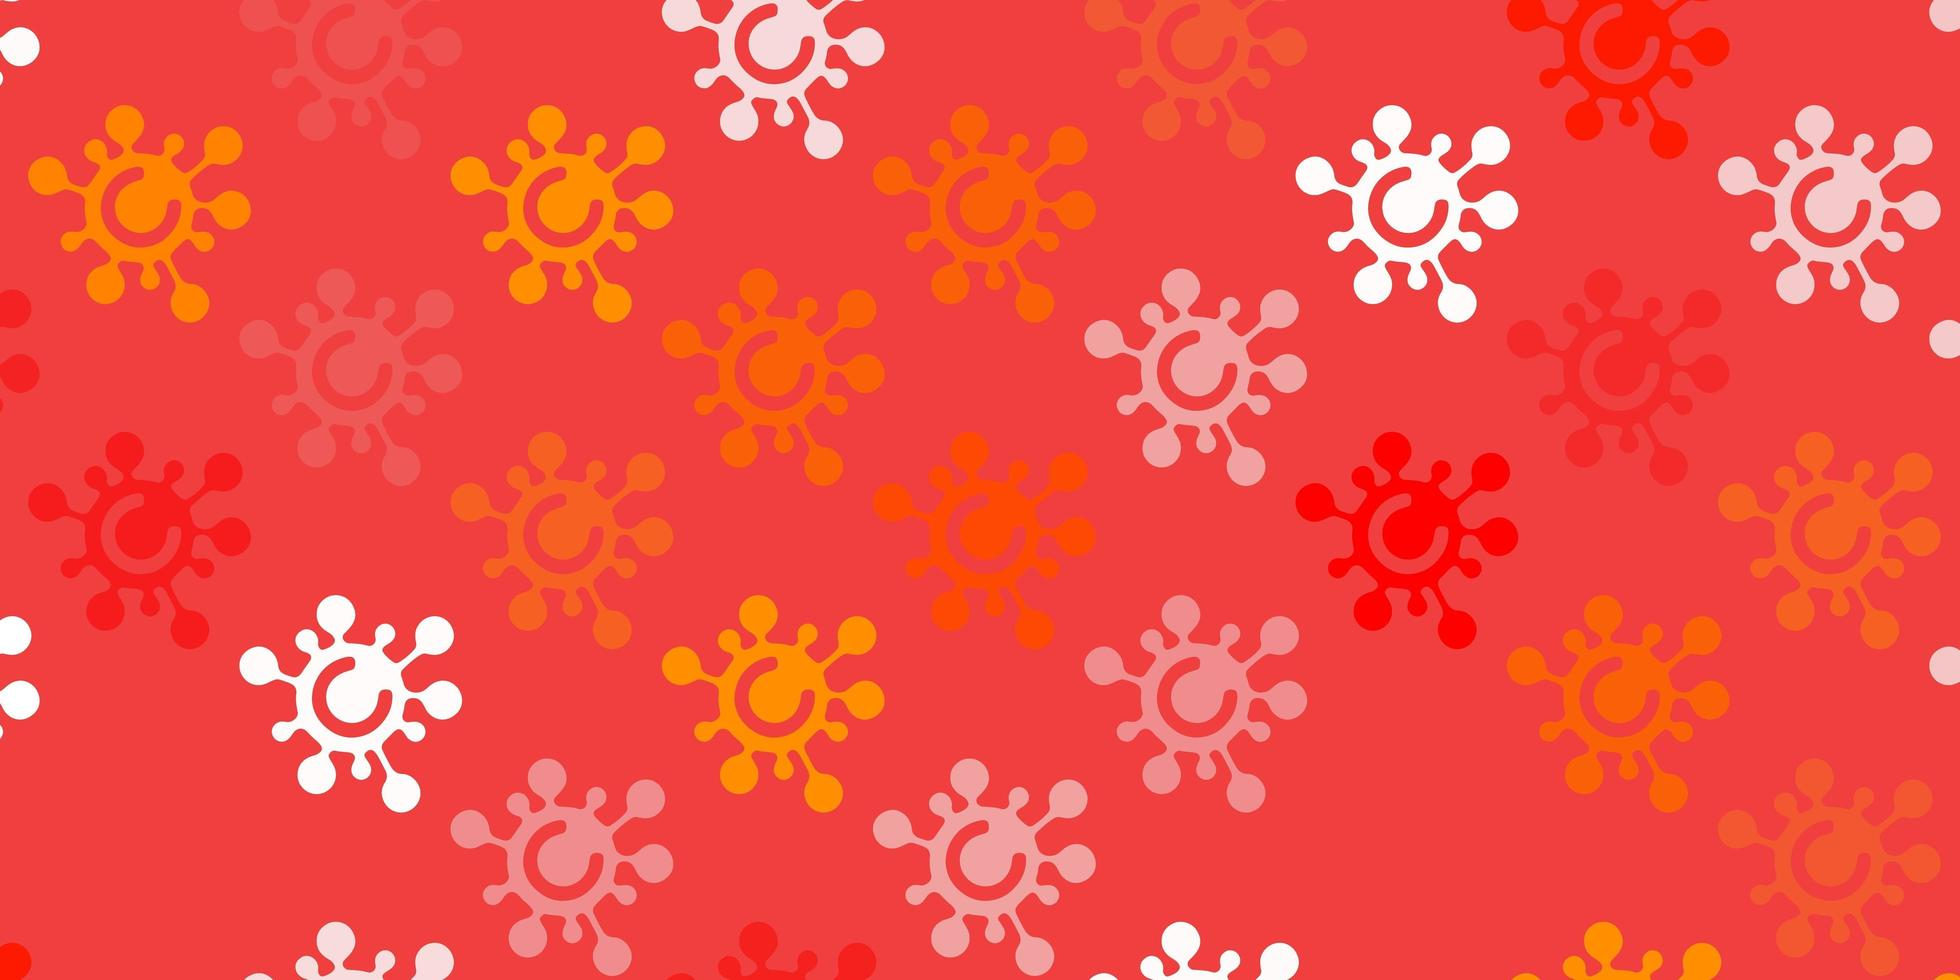 Light Red vector backdrop with virus symbols.